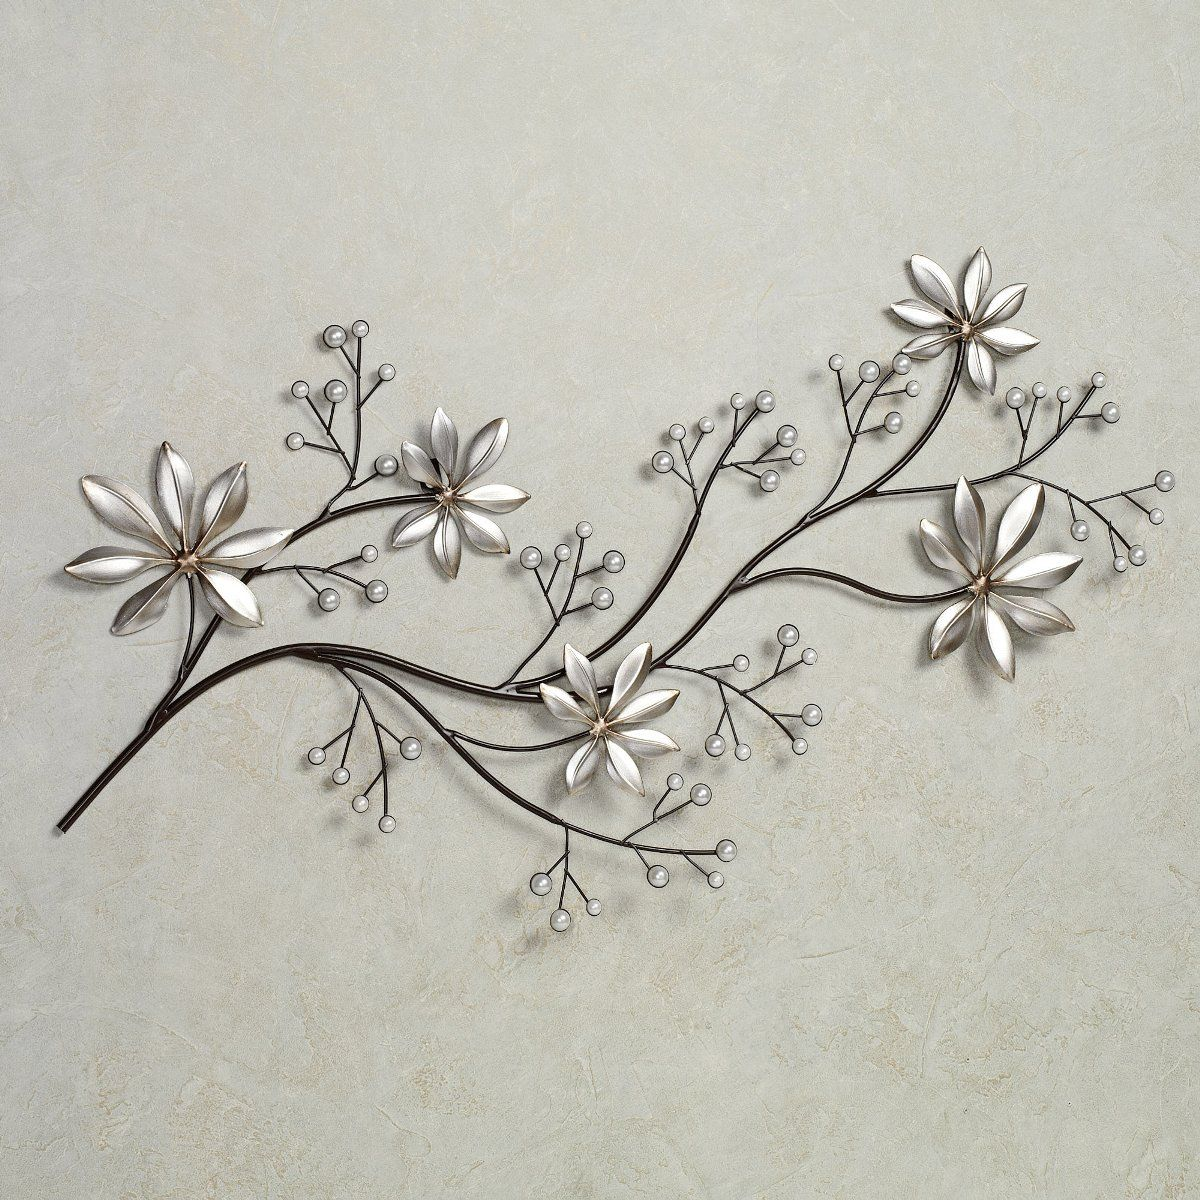 Pin By Victor Staley On Flowers In 2020 Floral Metal Wall Art Metal Tree Wall Art Metal Wall Art Panels